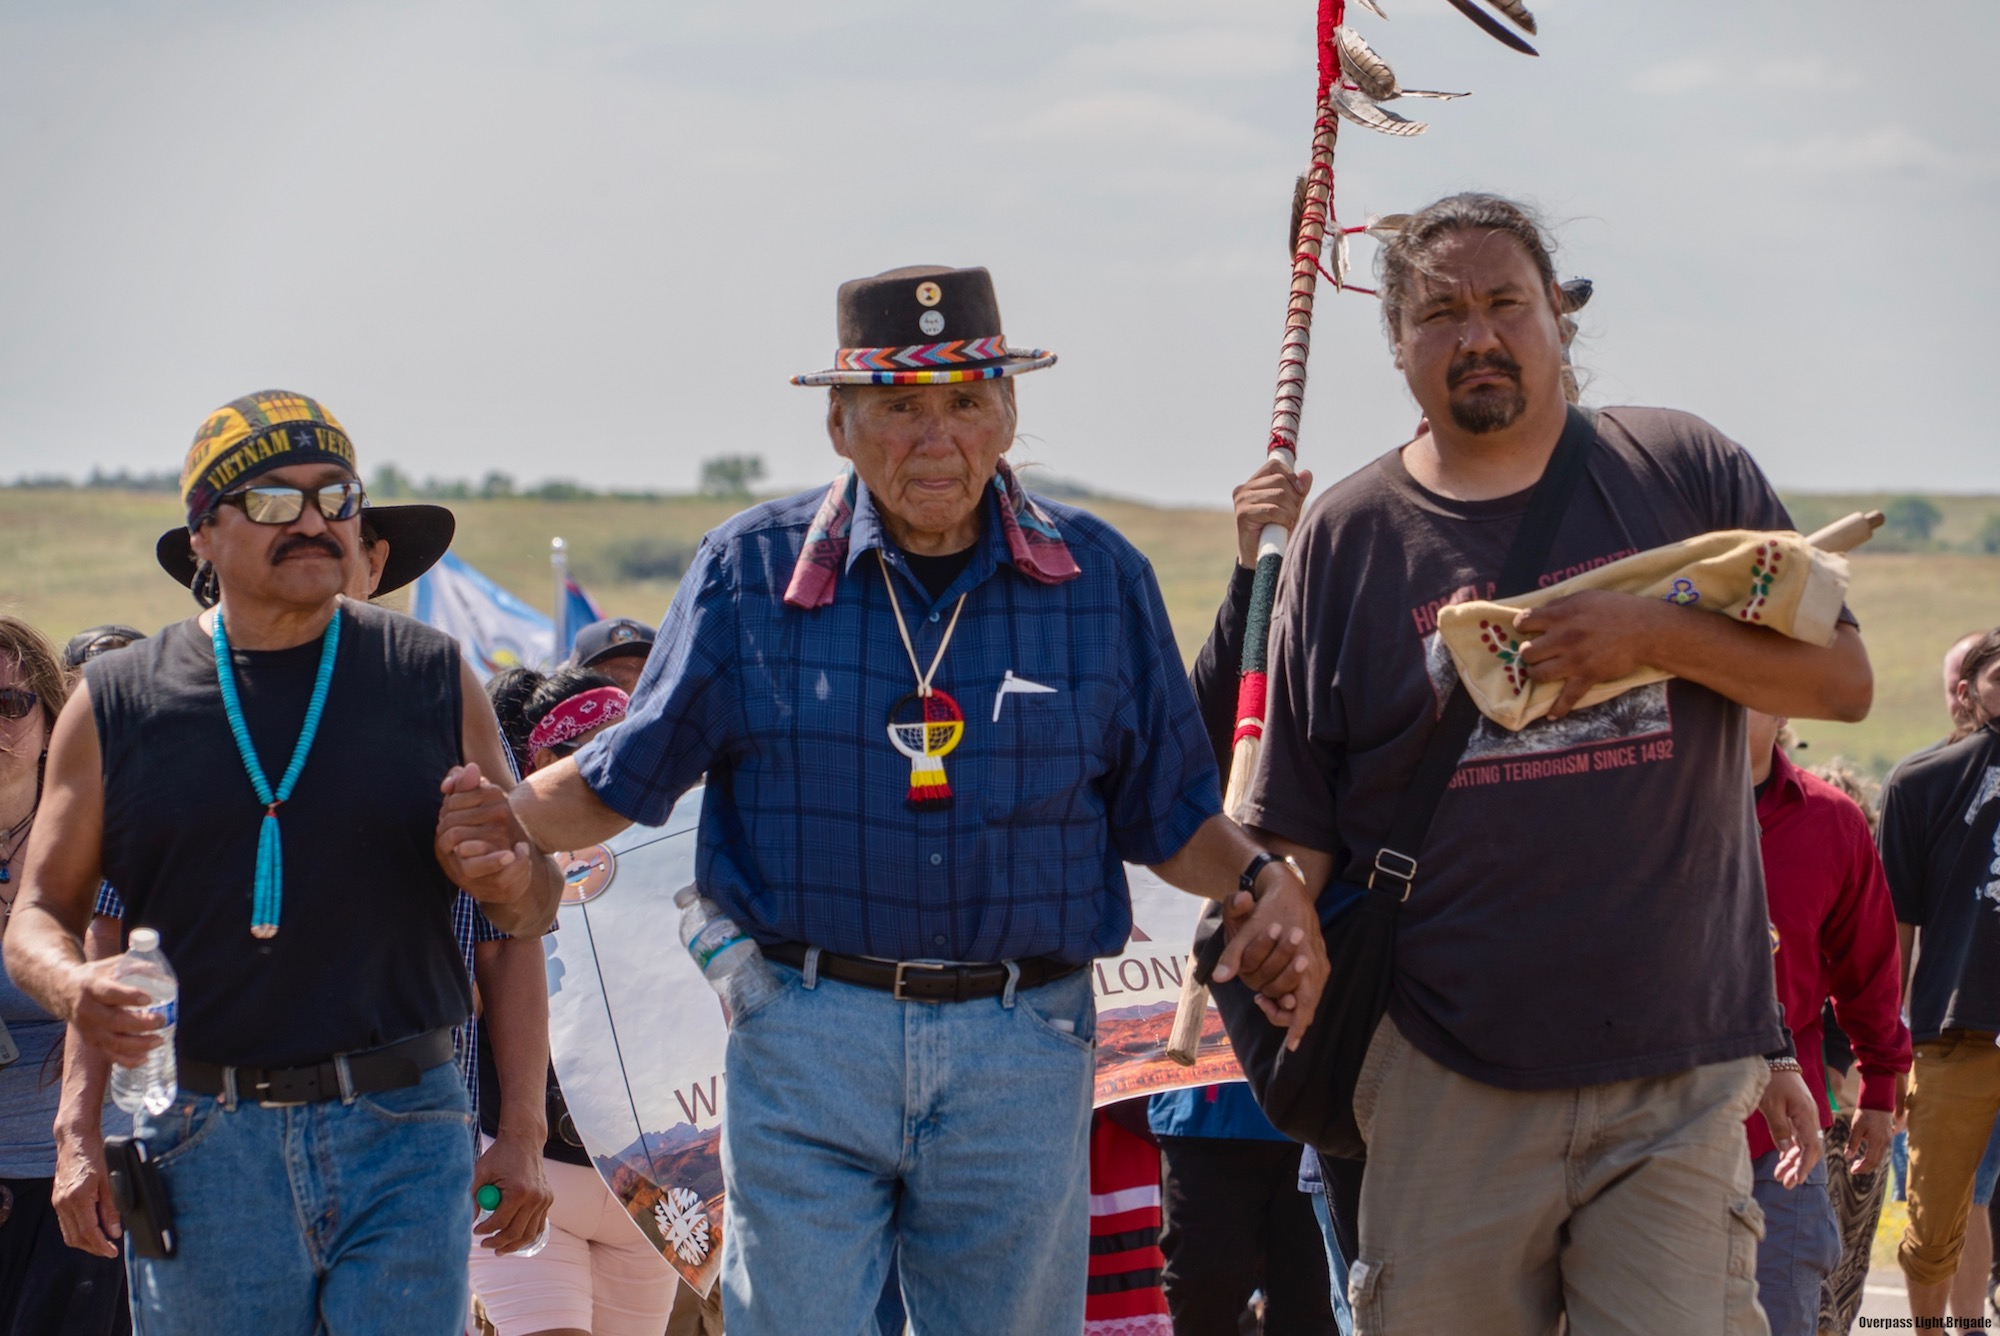 Leonard Peltier: Dennis Banks was one of the greatest Indian warriors of our time